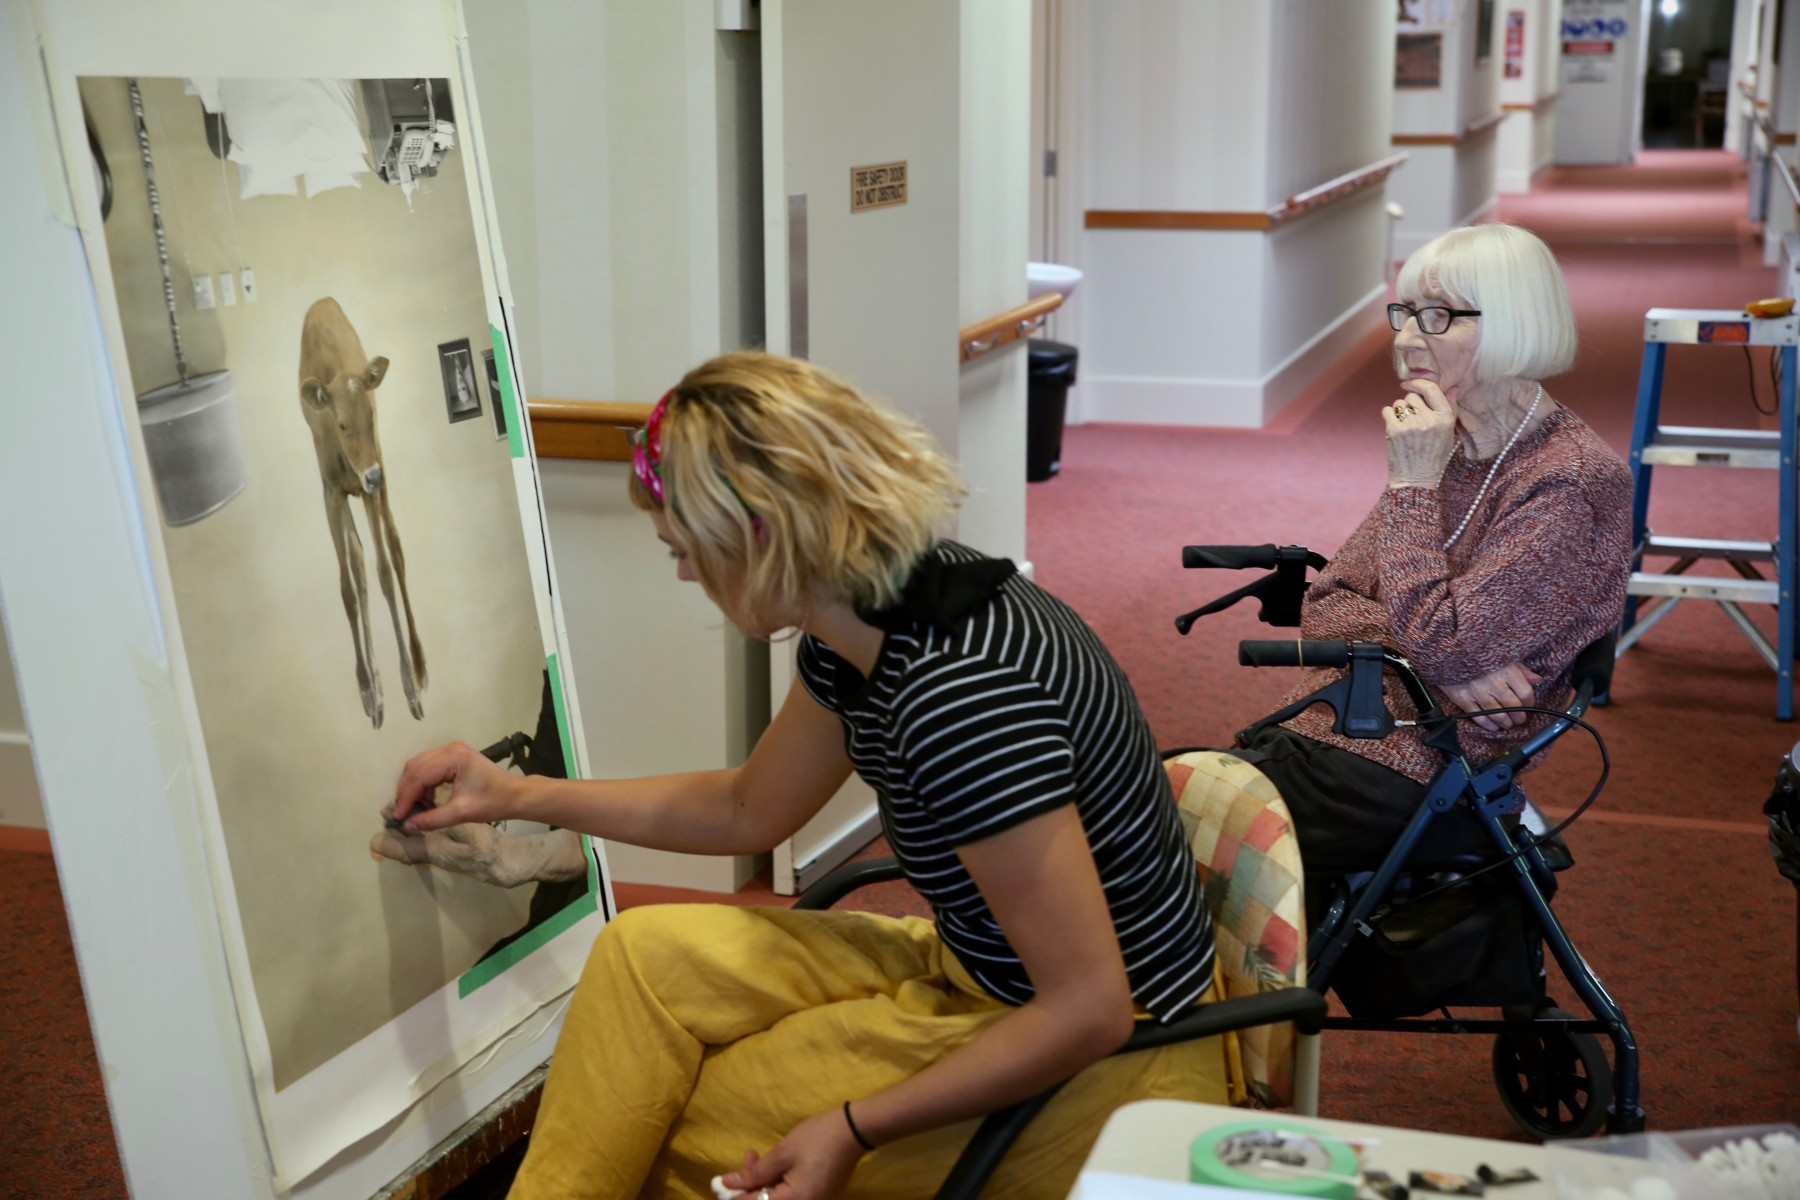 Artist Georgie Mattingley works while Bupa Aged Care resident watches on